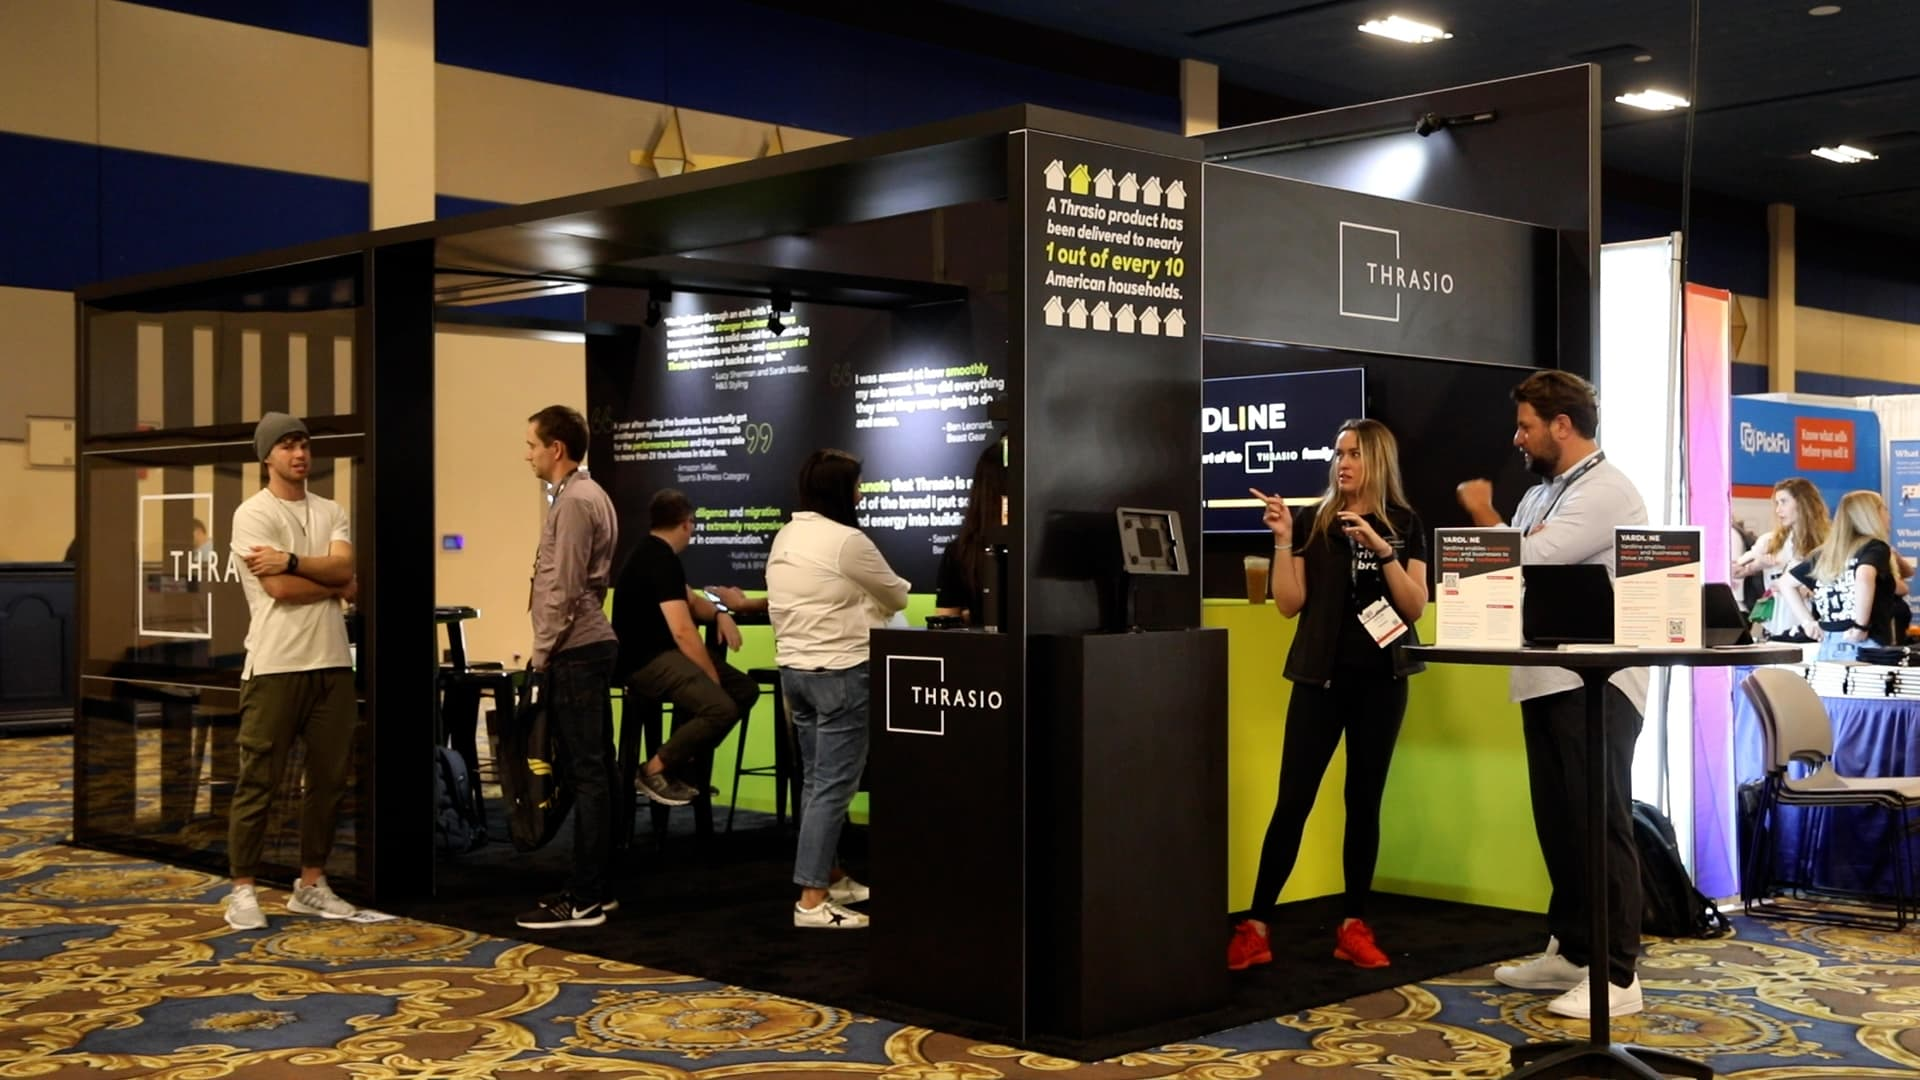 Thrasio, an early leader in the big business of Amazon aggregators, had a booth at the popular Prosper Show for Amazon sellers in Las Vegas, Nevada, on July 14, 2021.